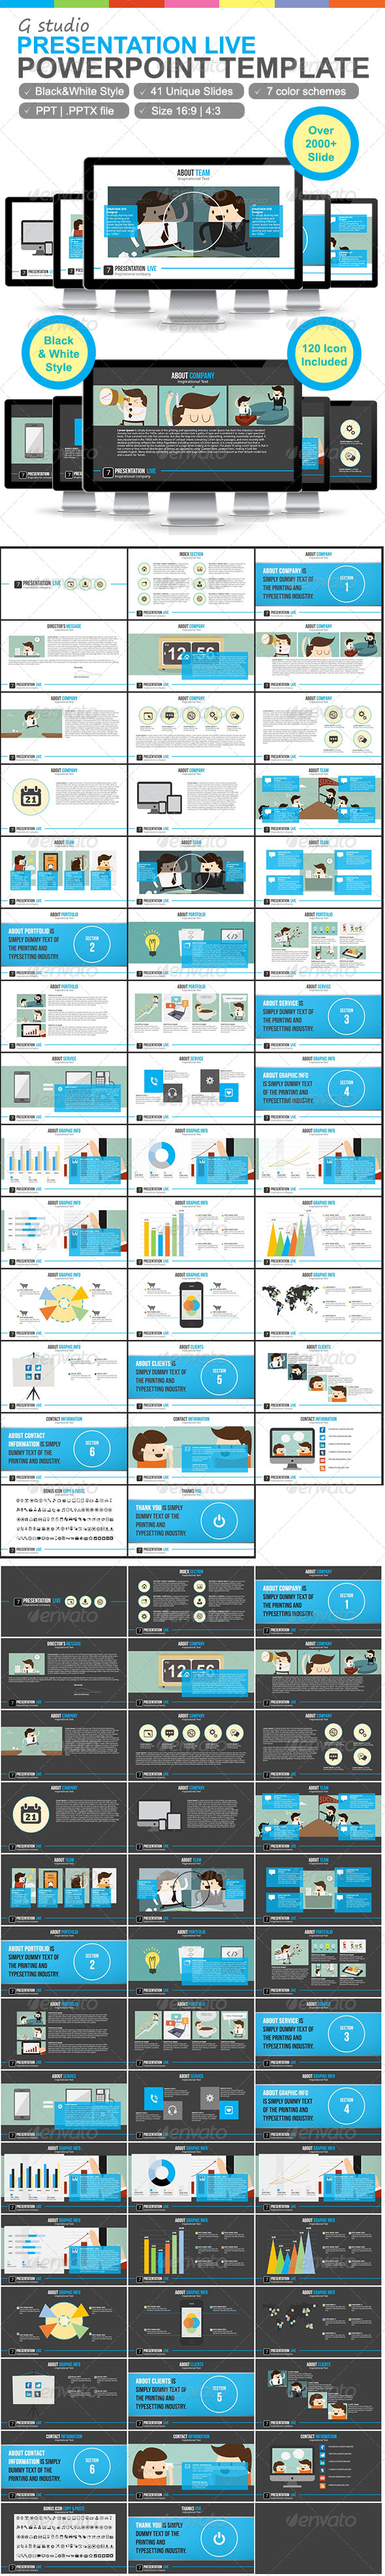 GraphicRiver Gstudio Presentation Live Powerpoint Template 6242541